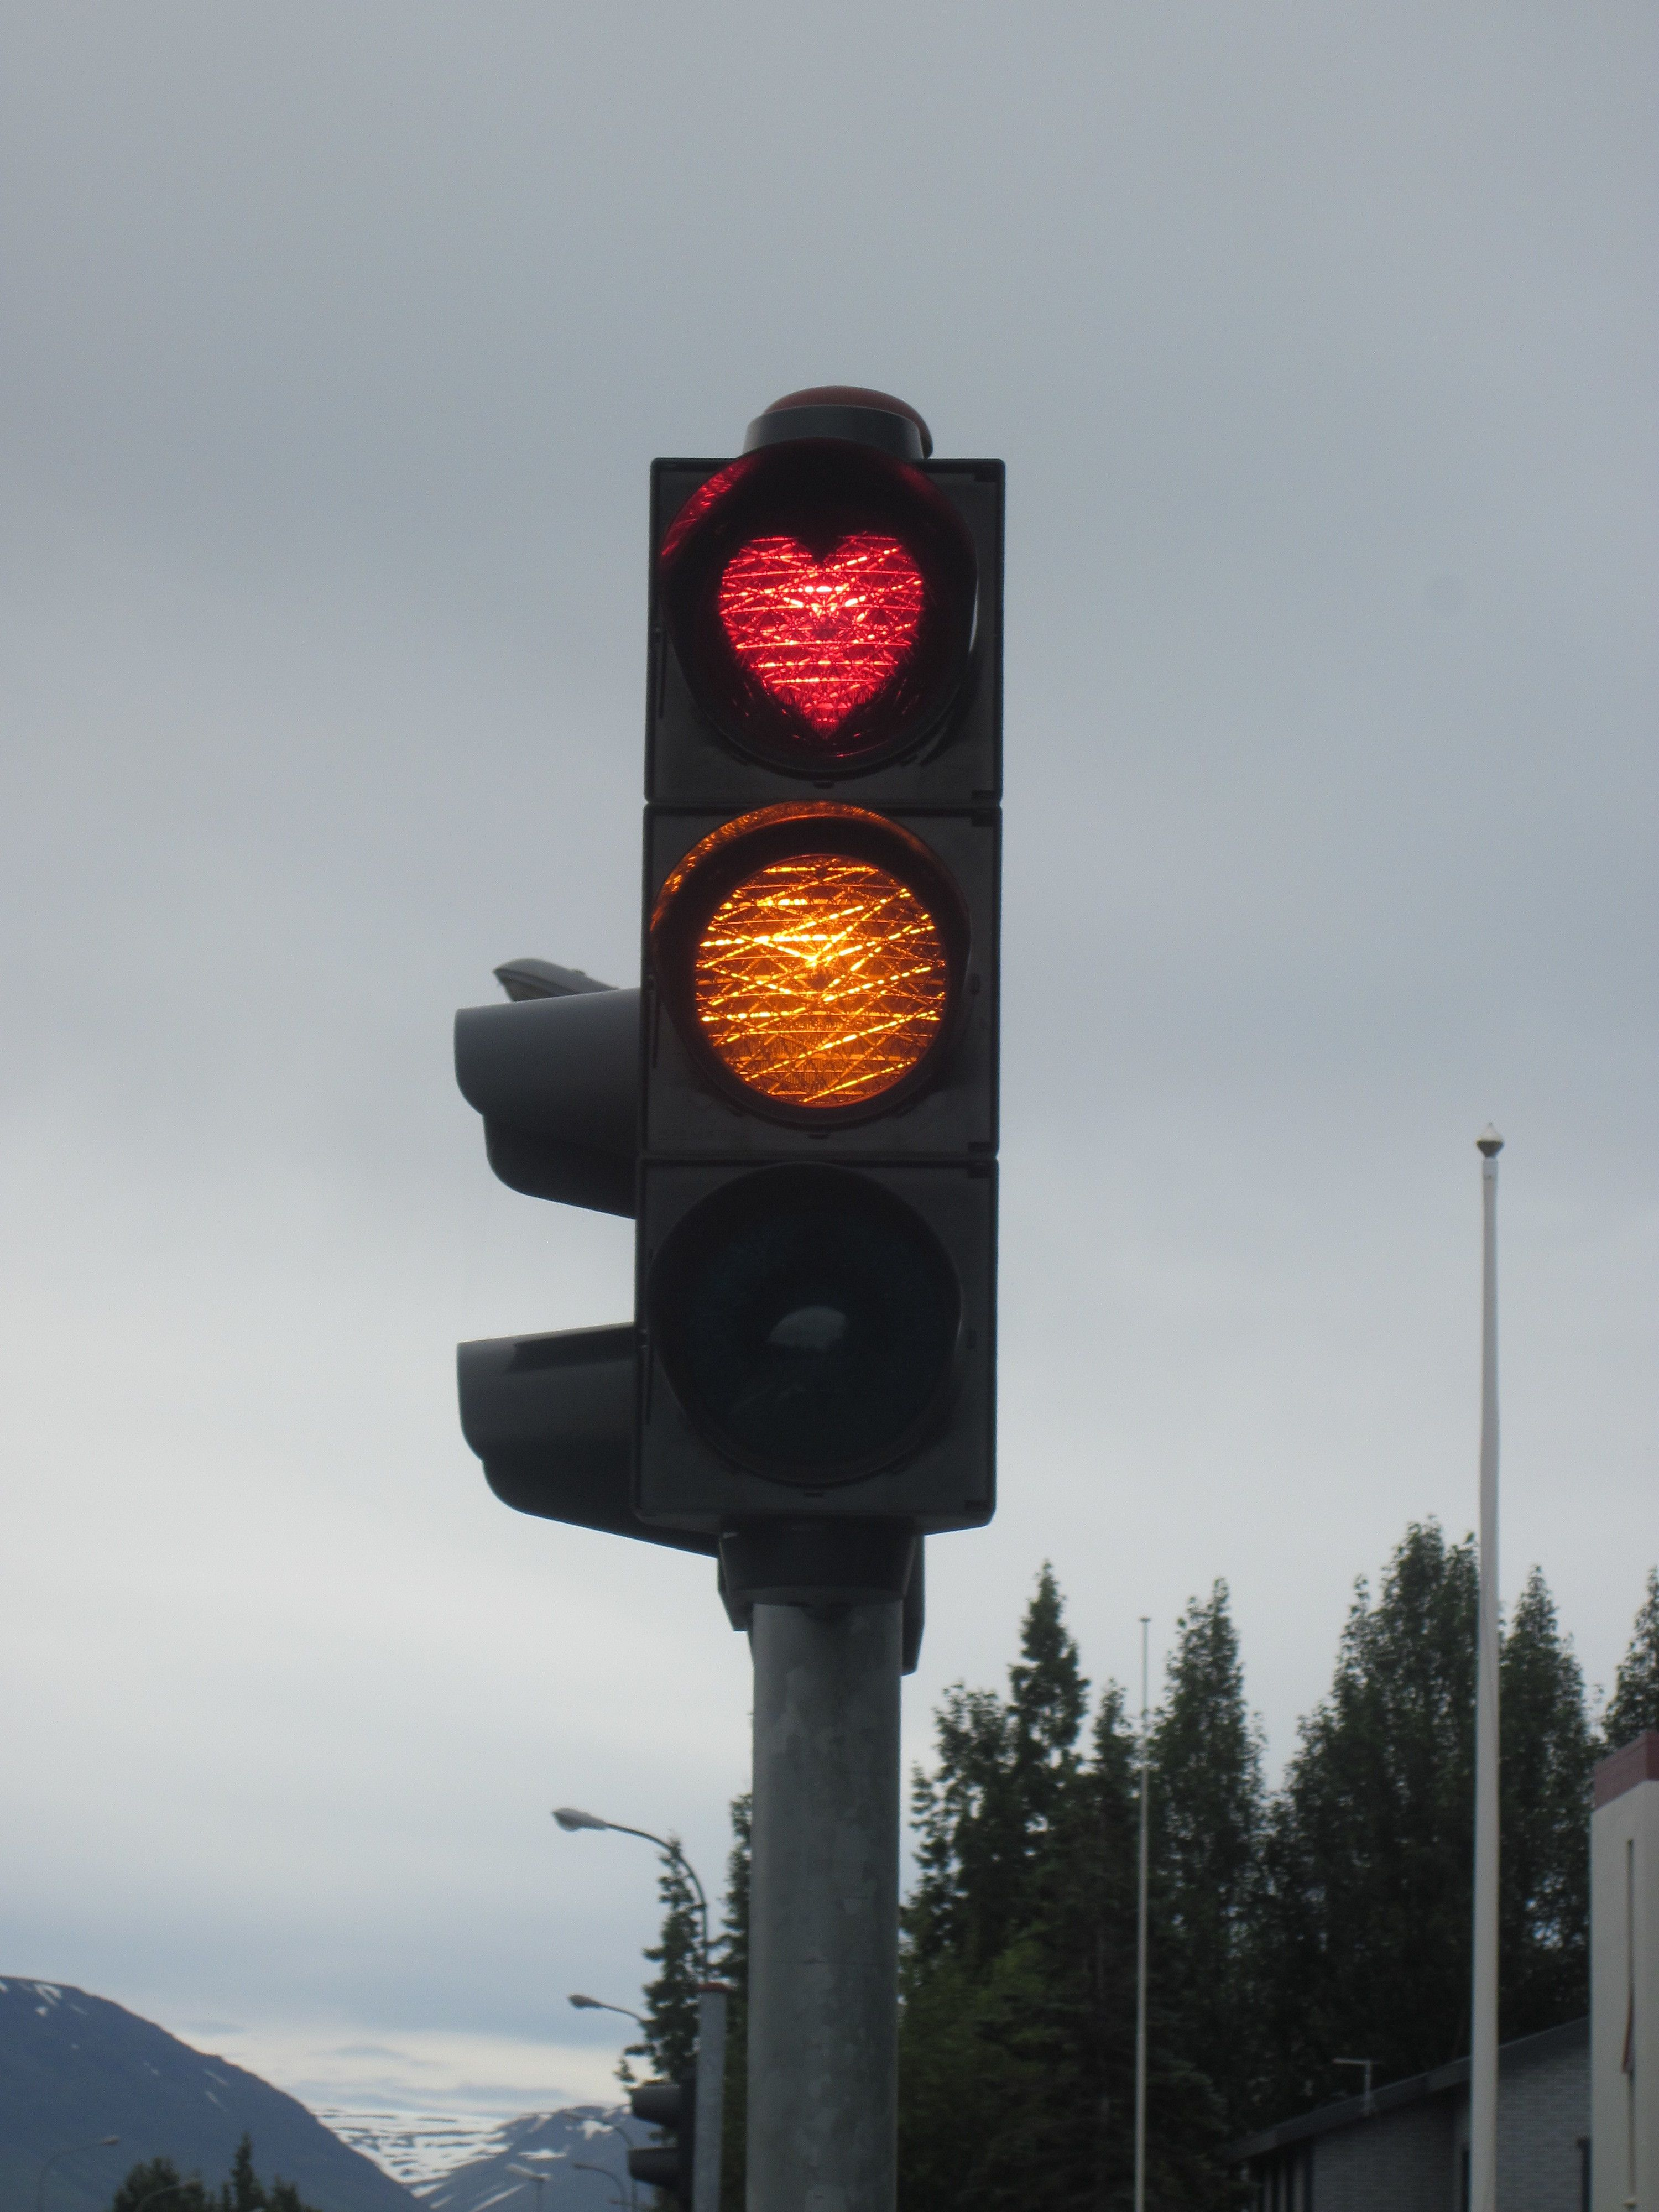 Traffic-light-heart.jpg (3000×4000) | Real Cool Shit | Pinterest ... for Real Traffic Lights  568zmd